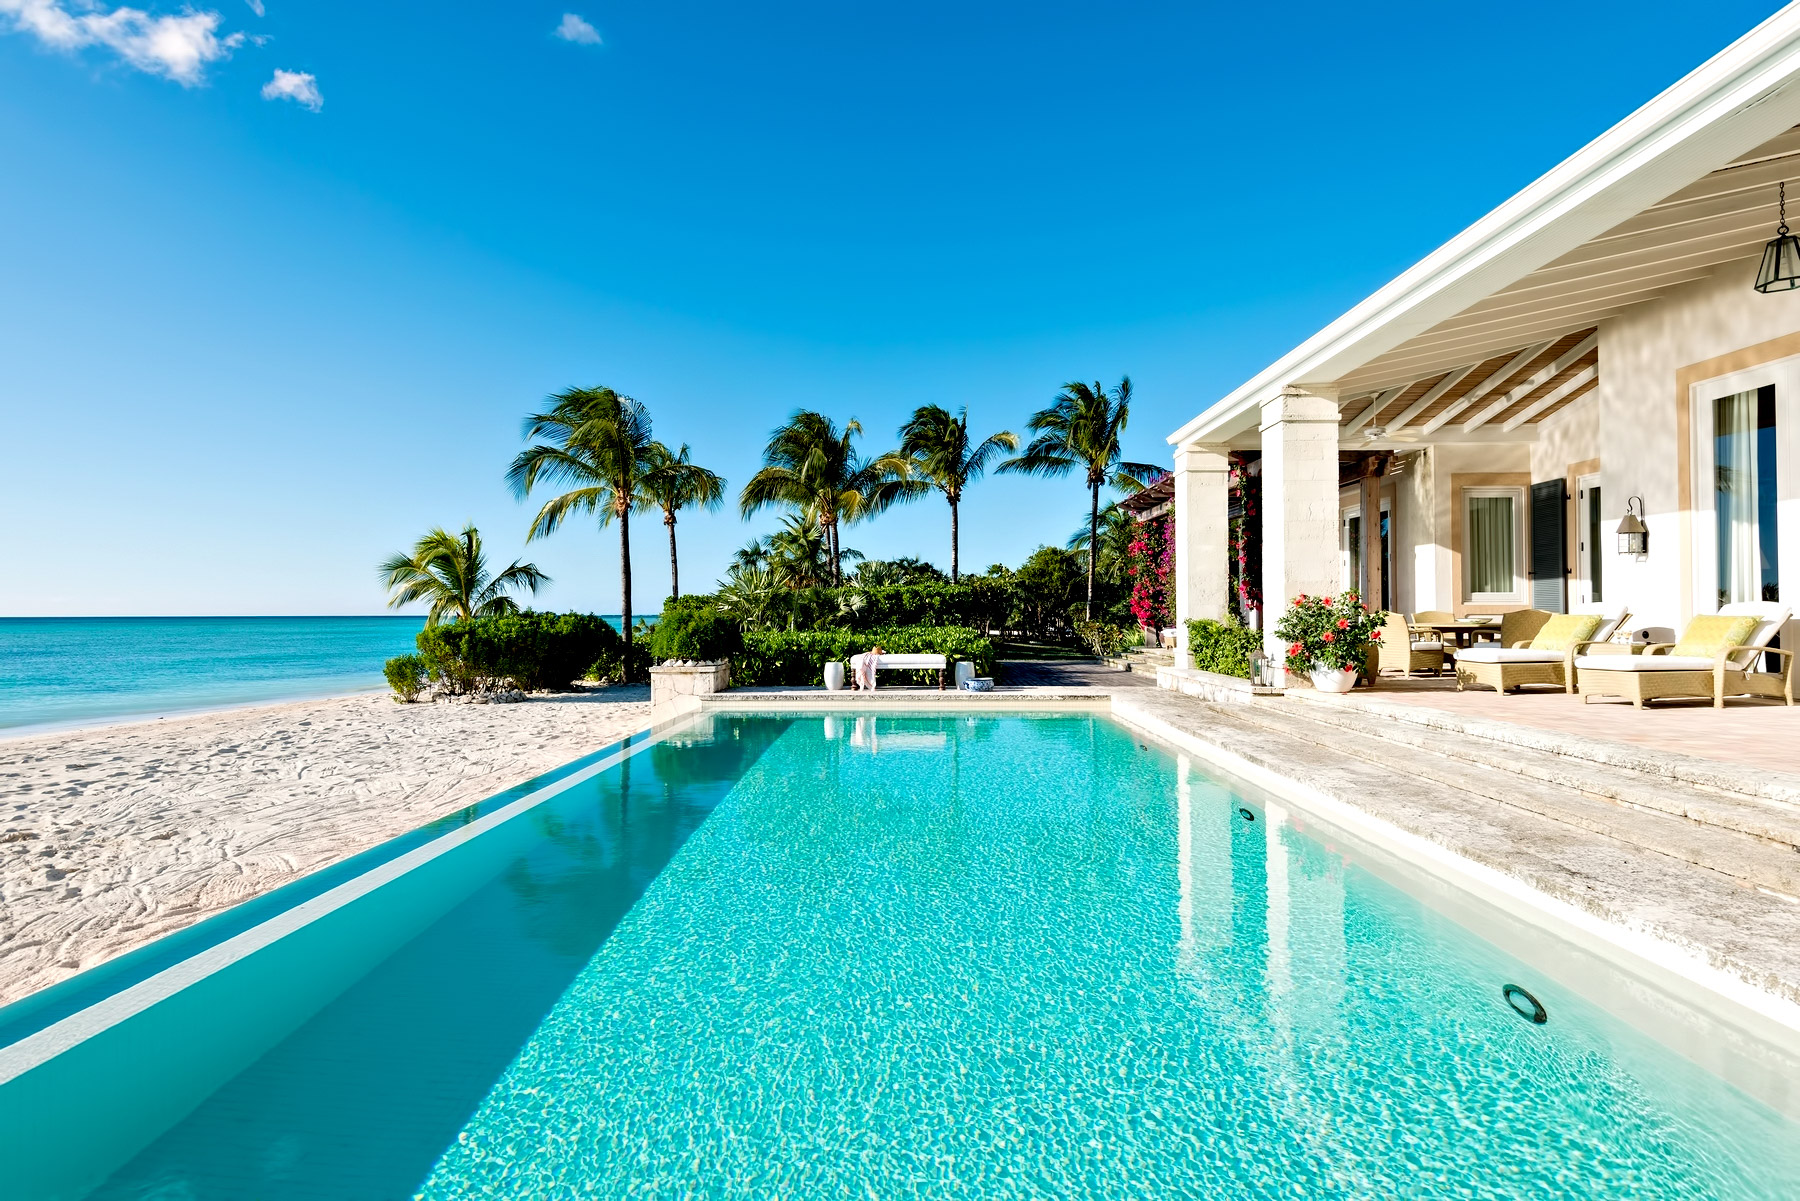 Oliver's Cove Luxury Estate - Parrot Cay, Turks and Caicos Islands